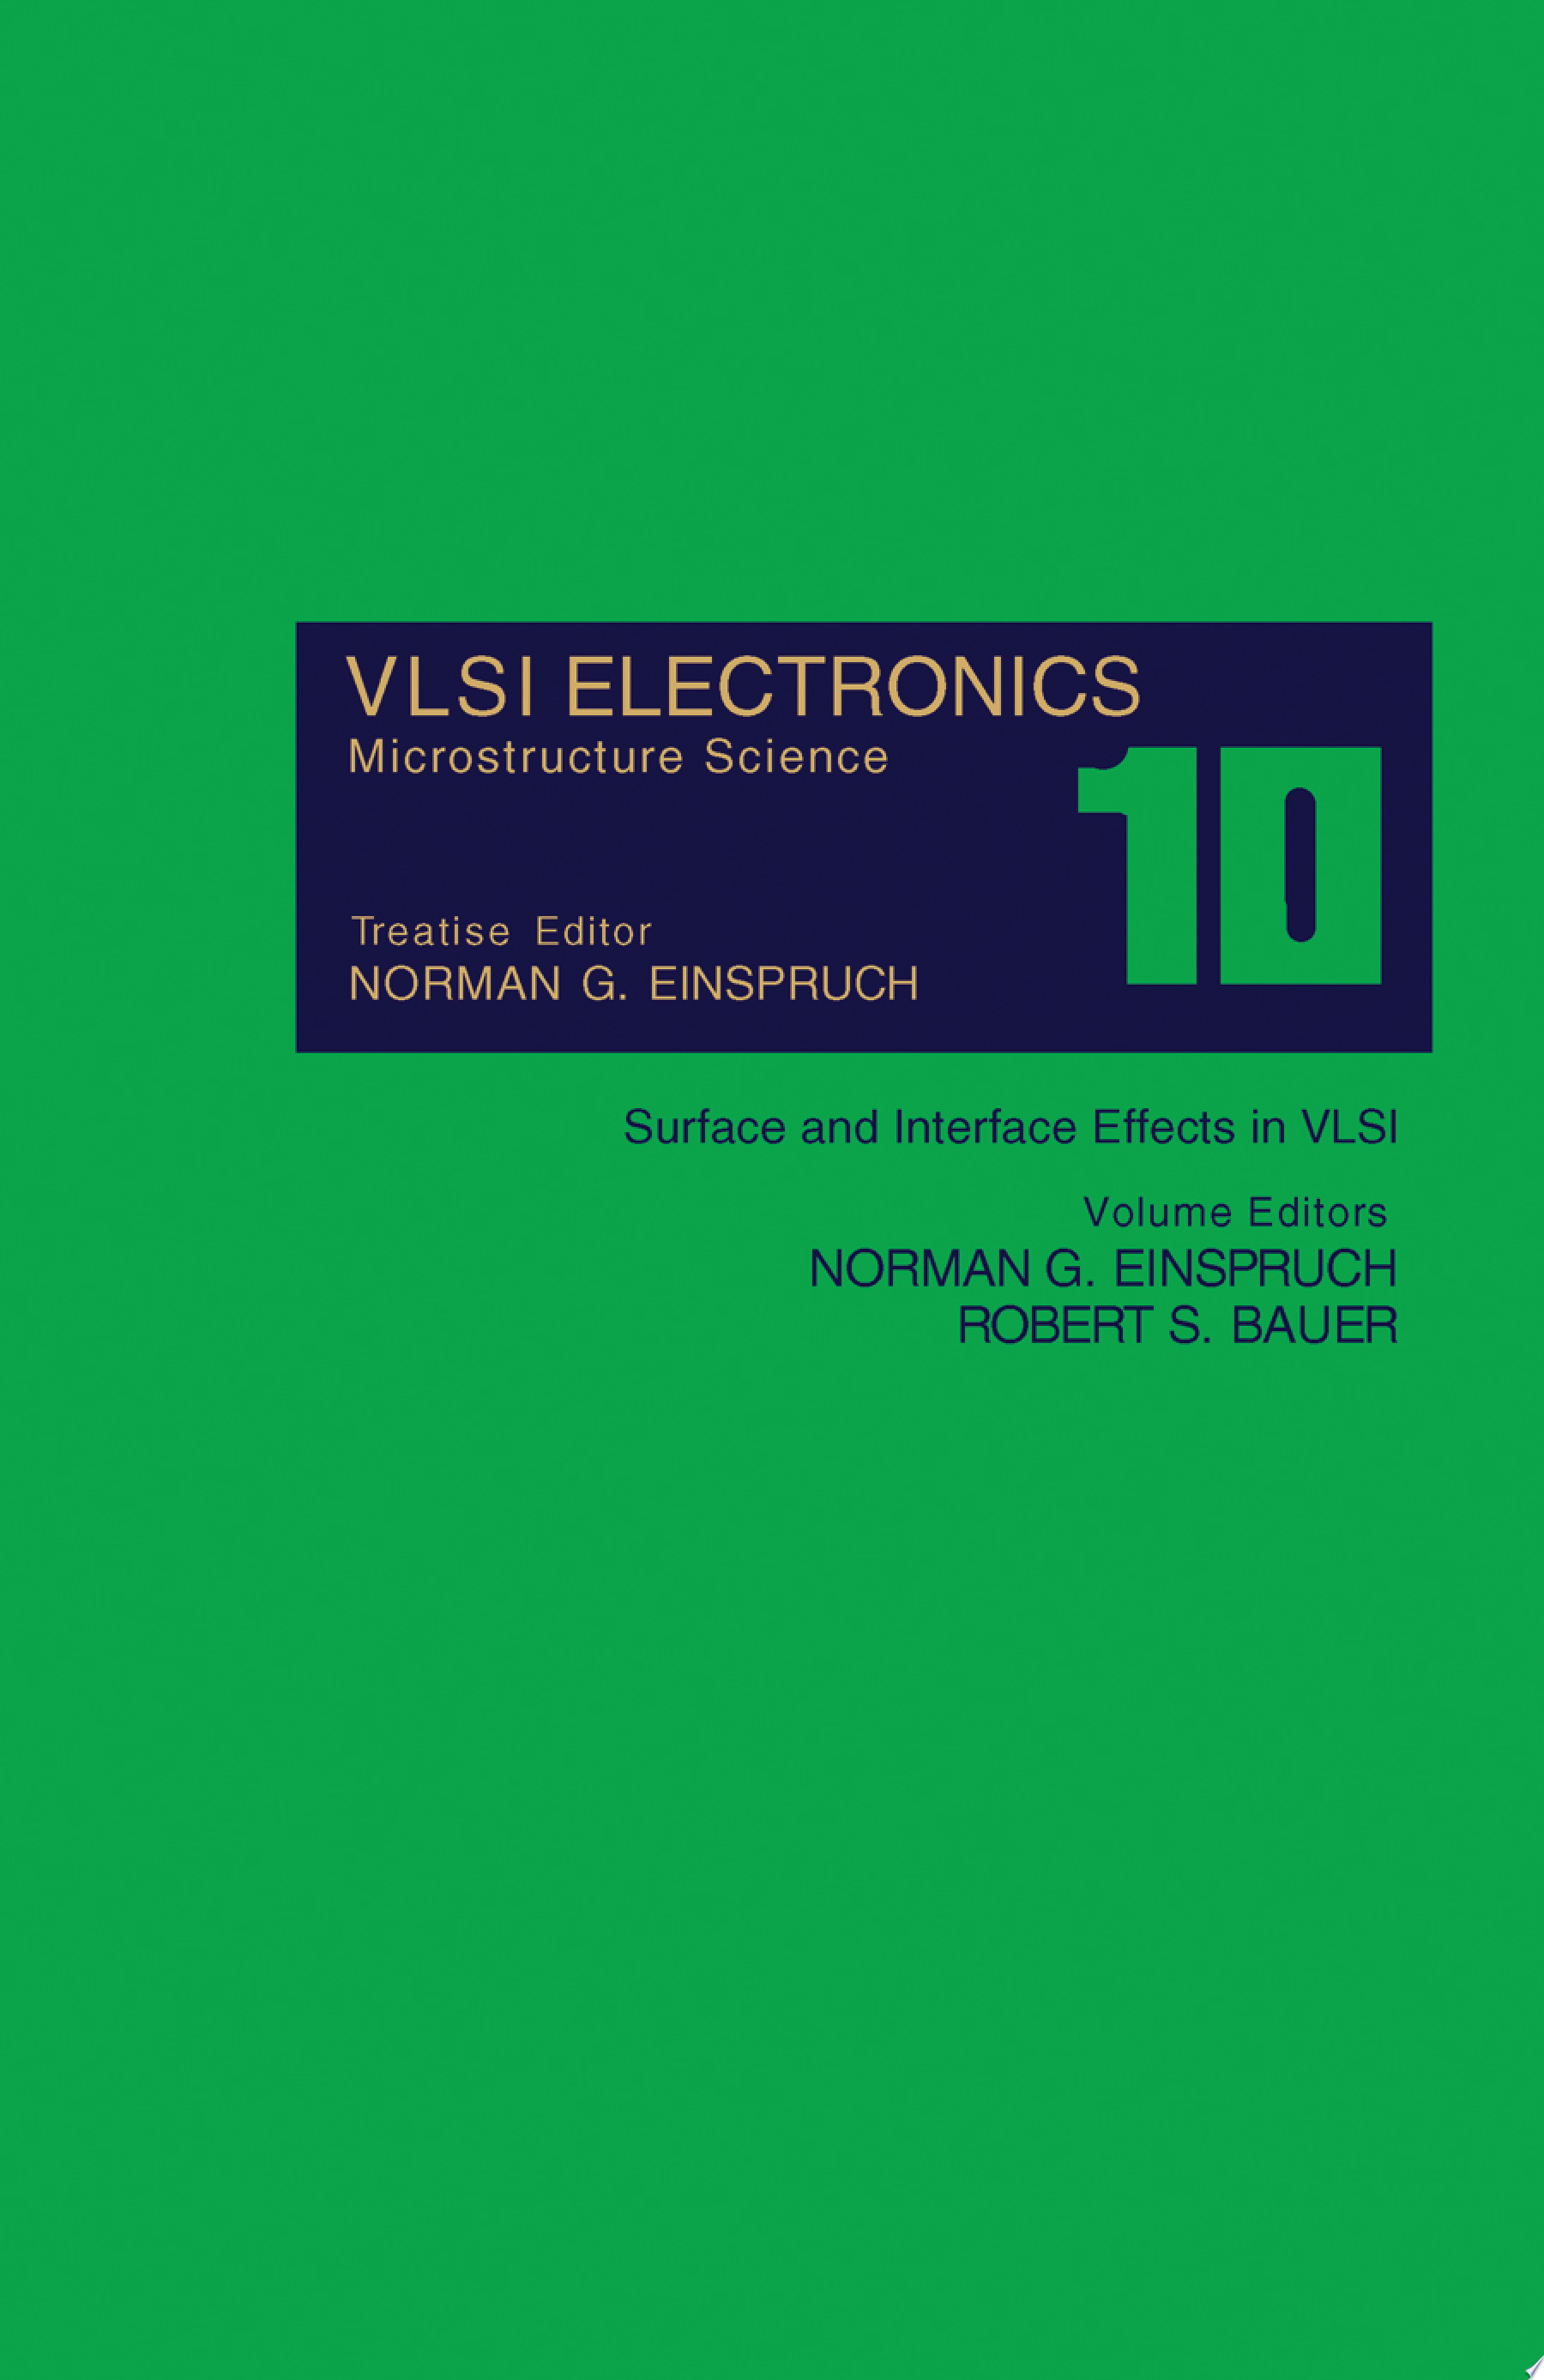 Surface and Interface Effects in VLSI